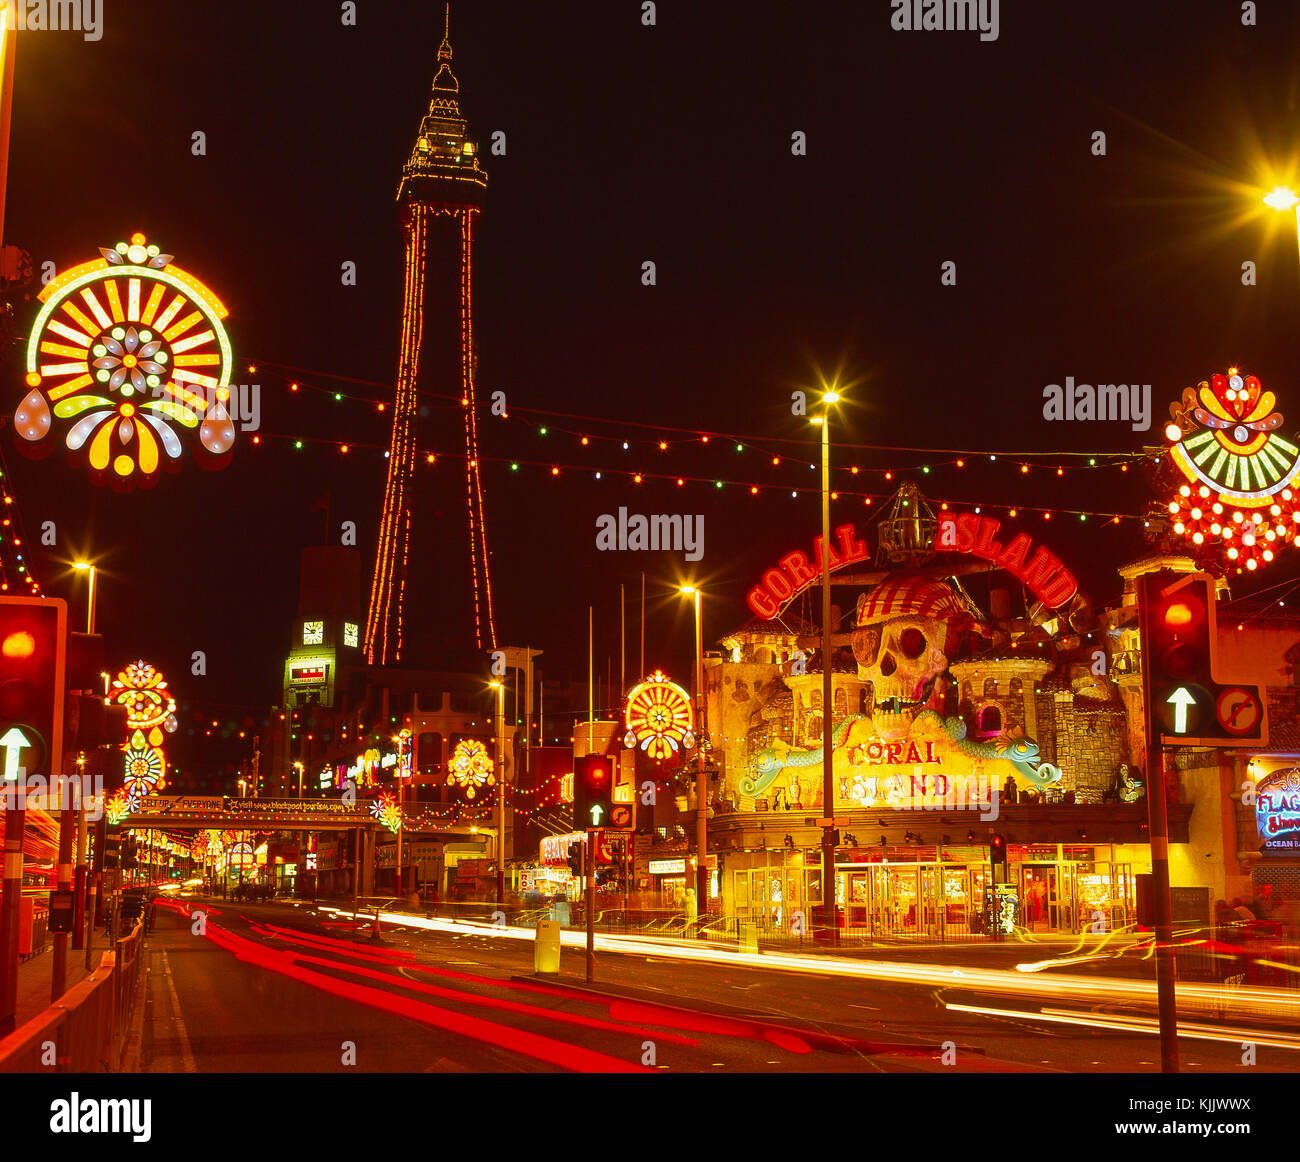 Colourful scene in central Blackpool during the late summer illuminations from promenade, Blackpool, Lancashire, Stock Photo